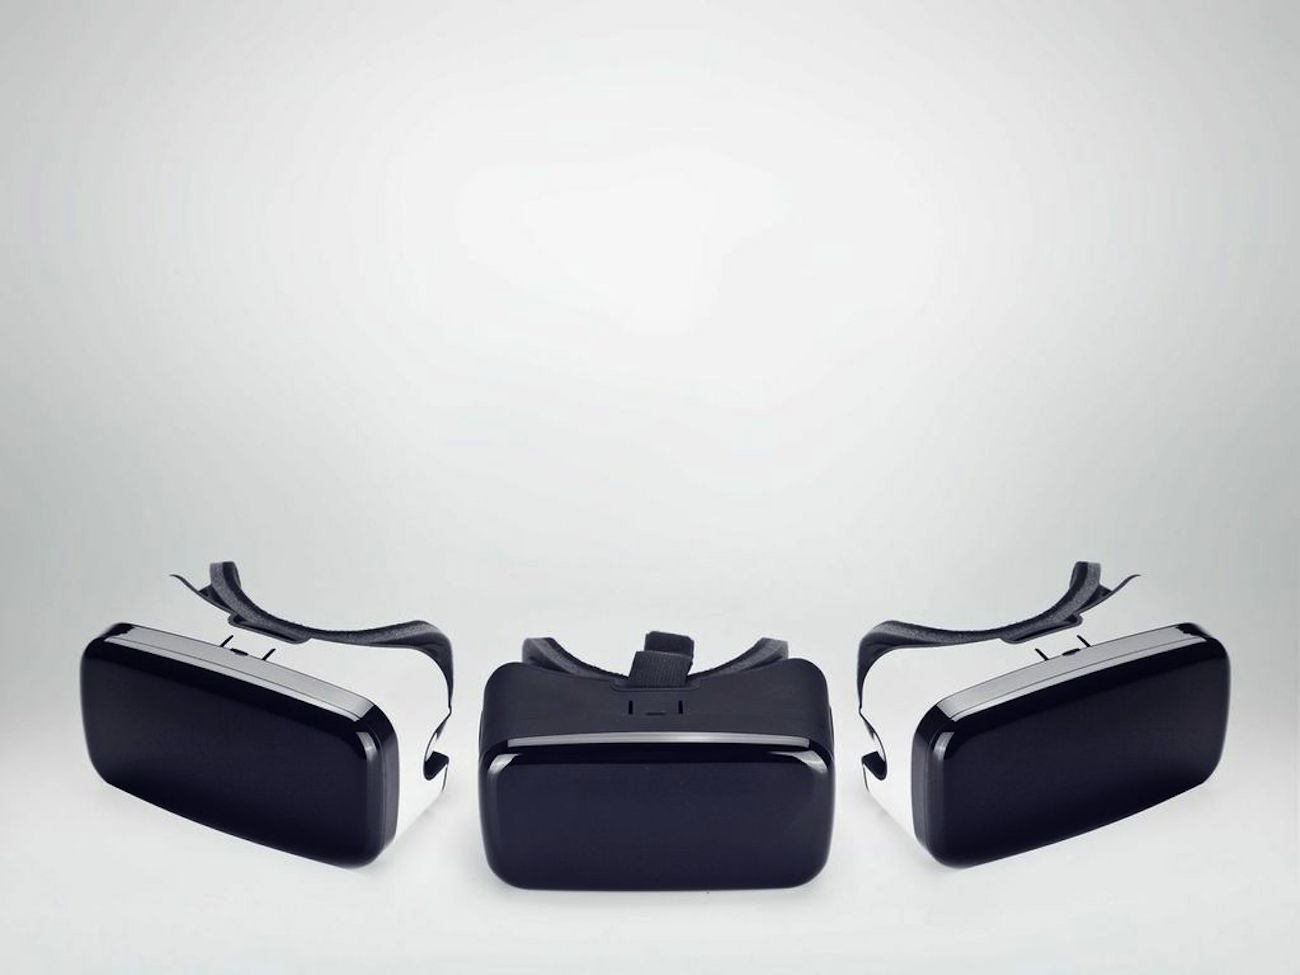 xg-virtual-reality-headset-02-2